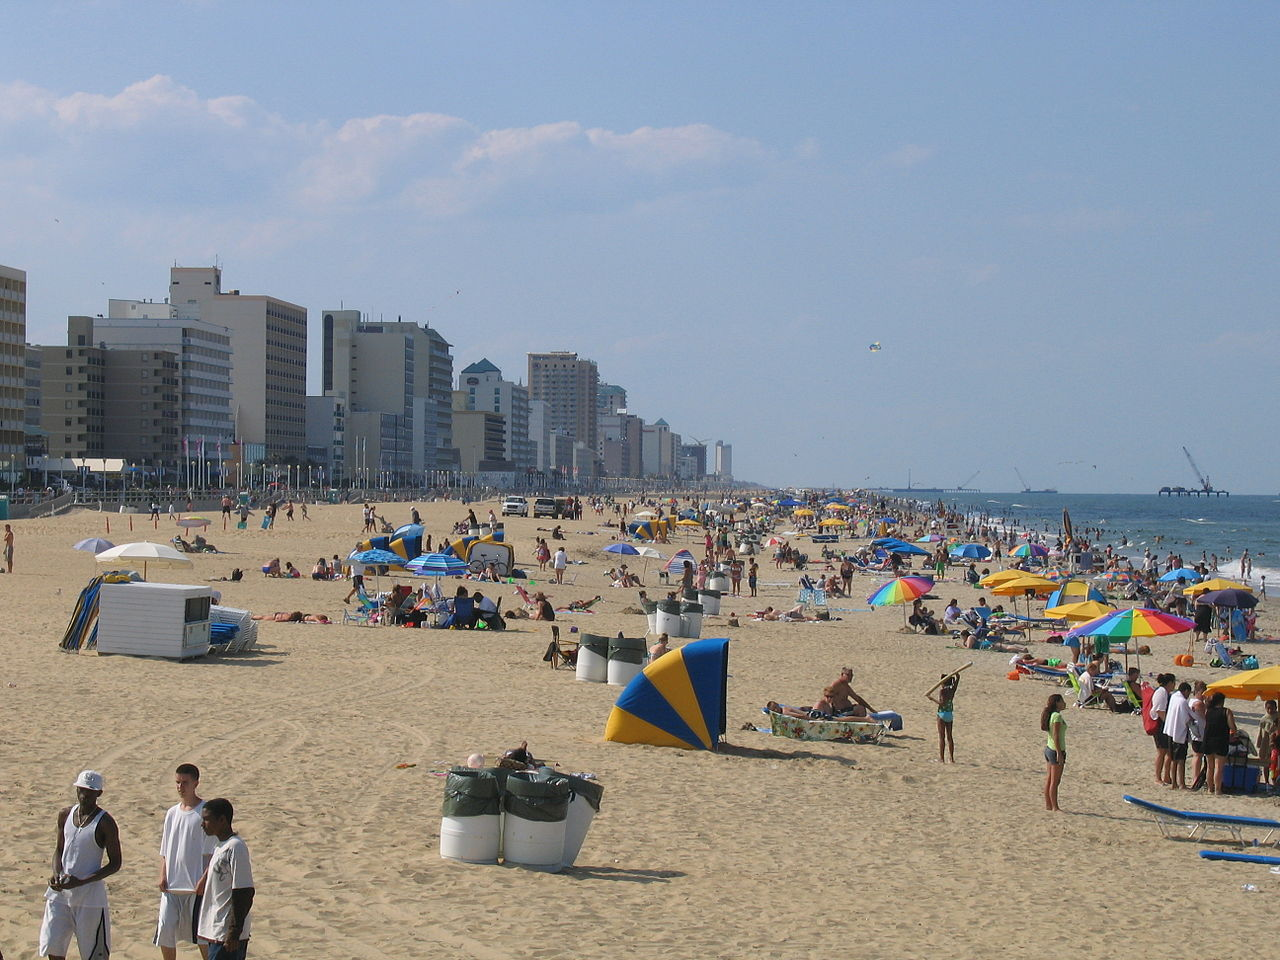 The Top Attraction to See in Virginia-Virginia Beach